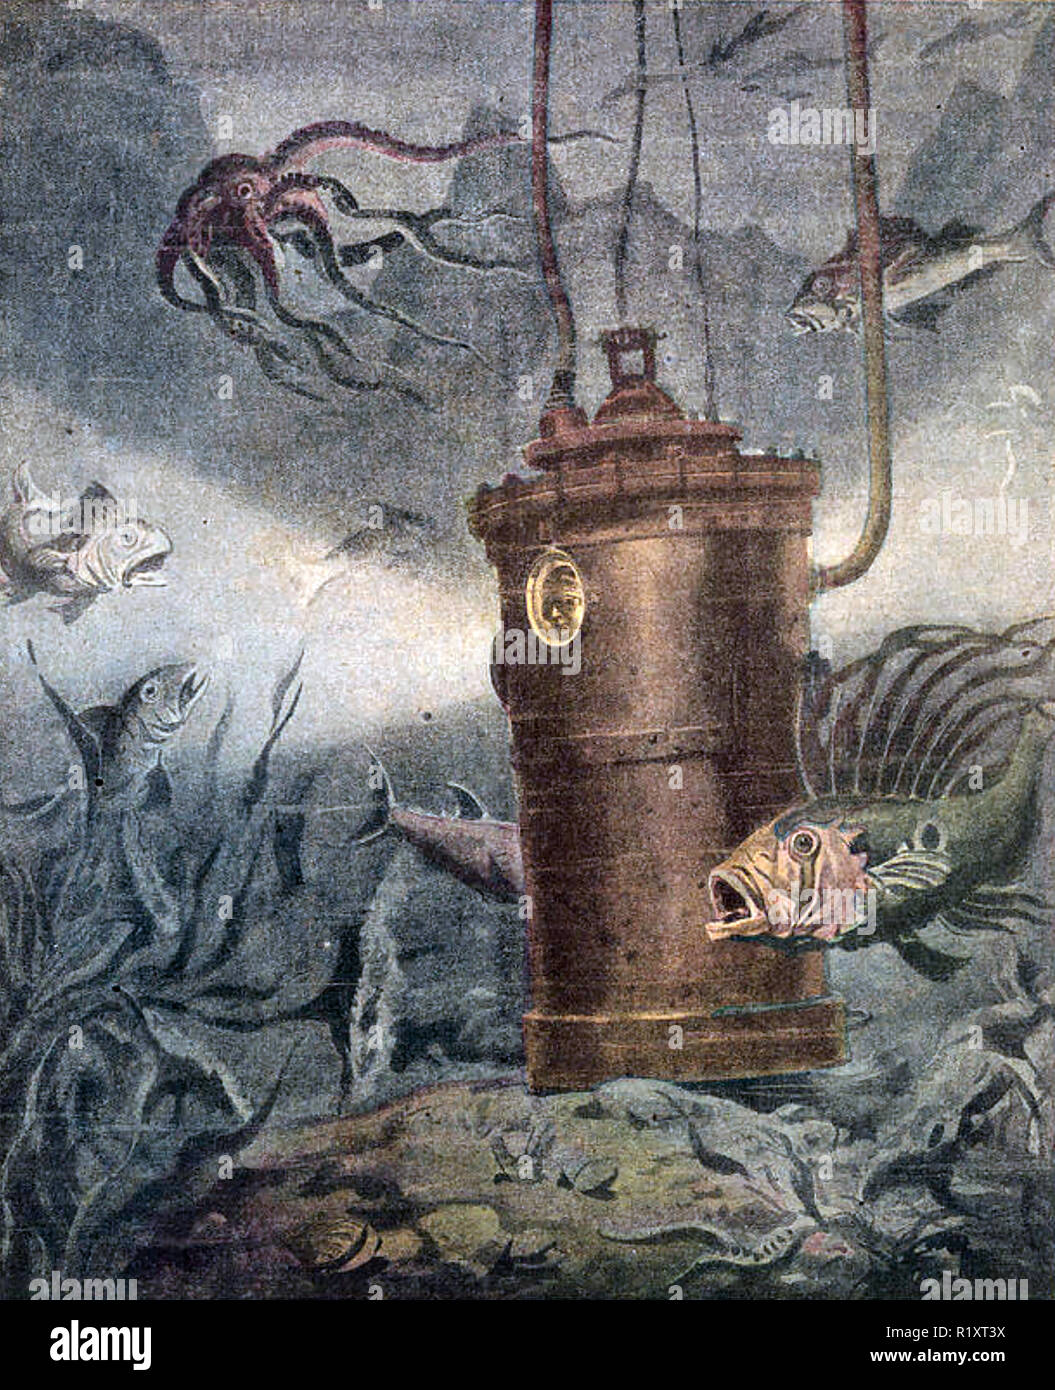 DIVING BELL in the Gulf of Naples illustrated in an Italian magazine in 1910 - Stock Image